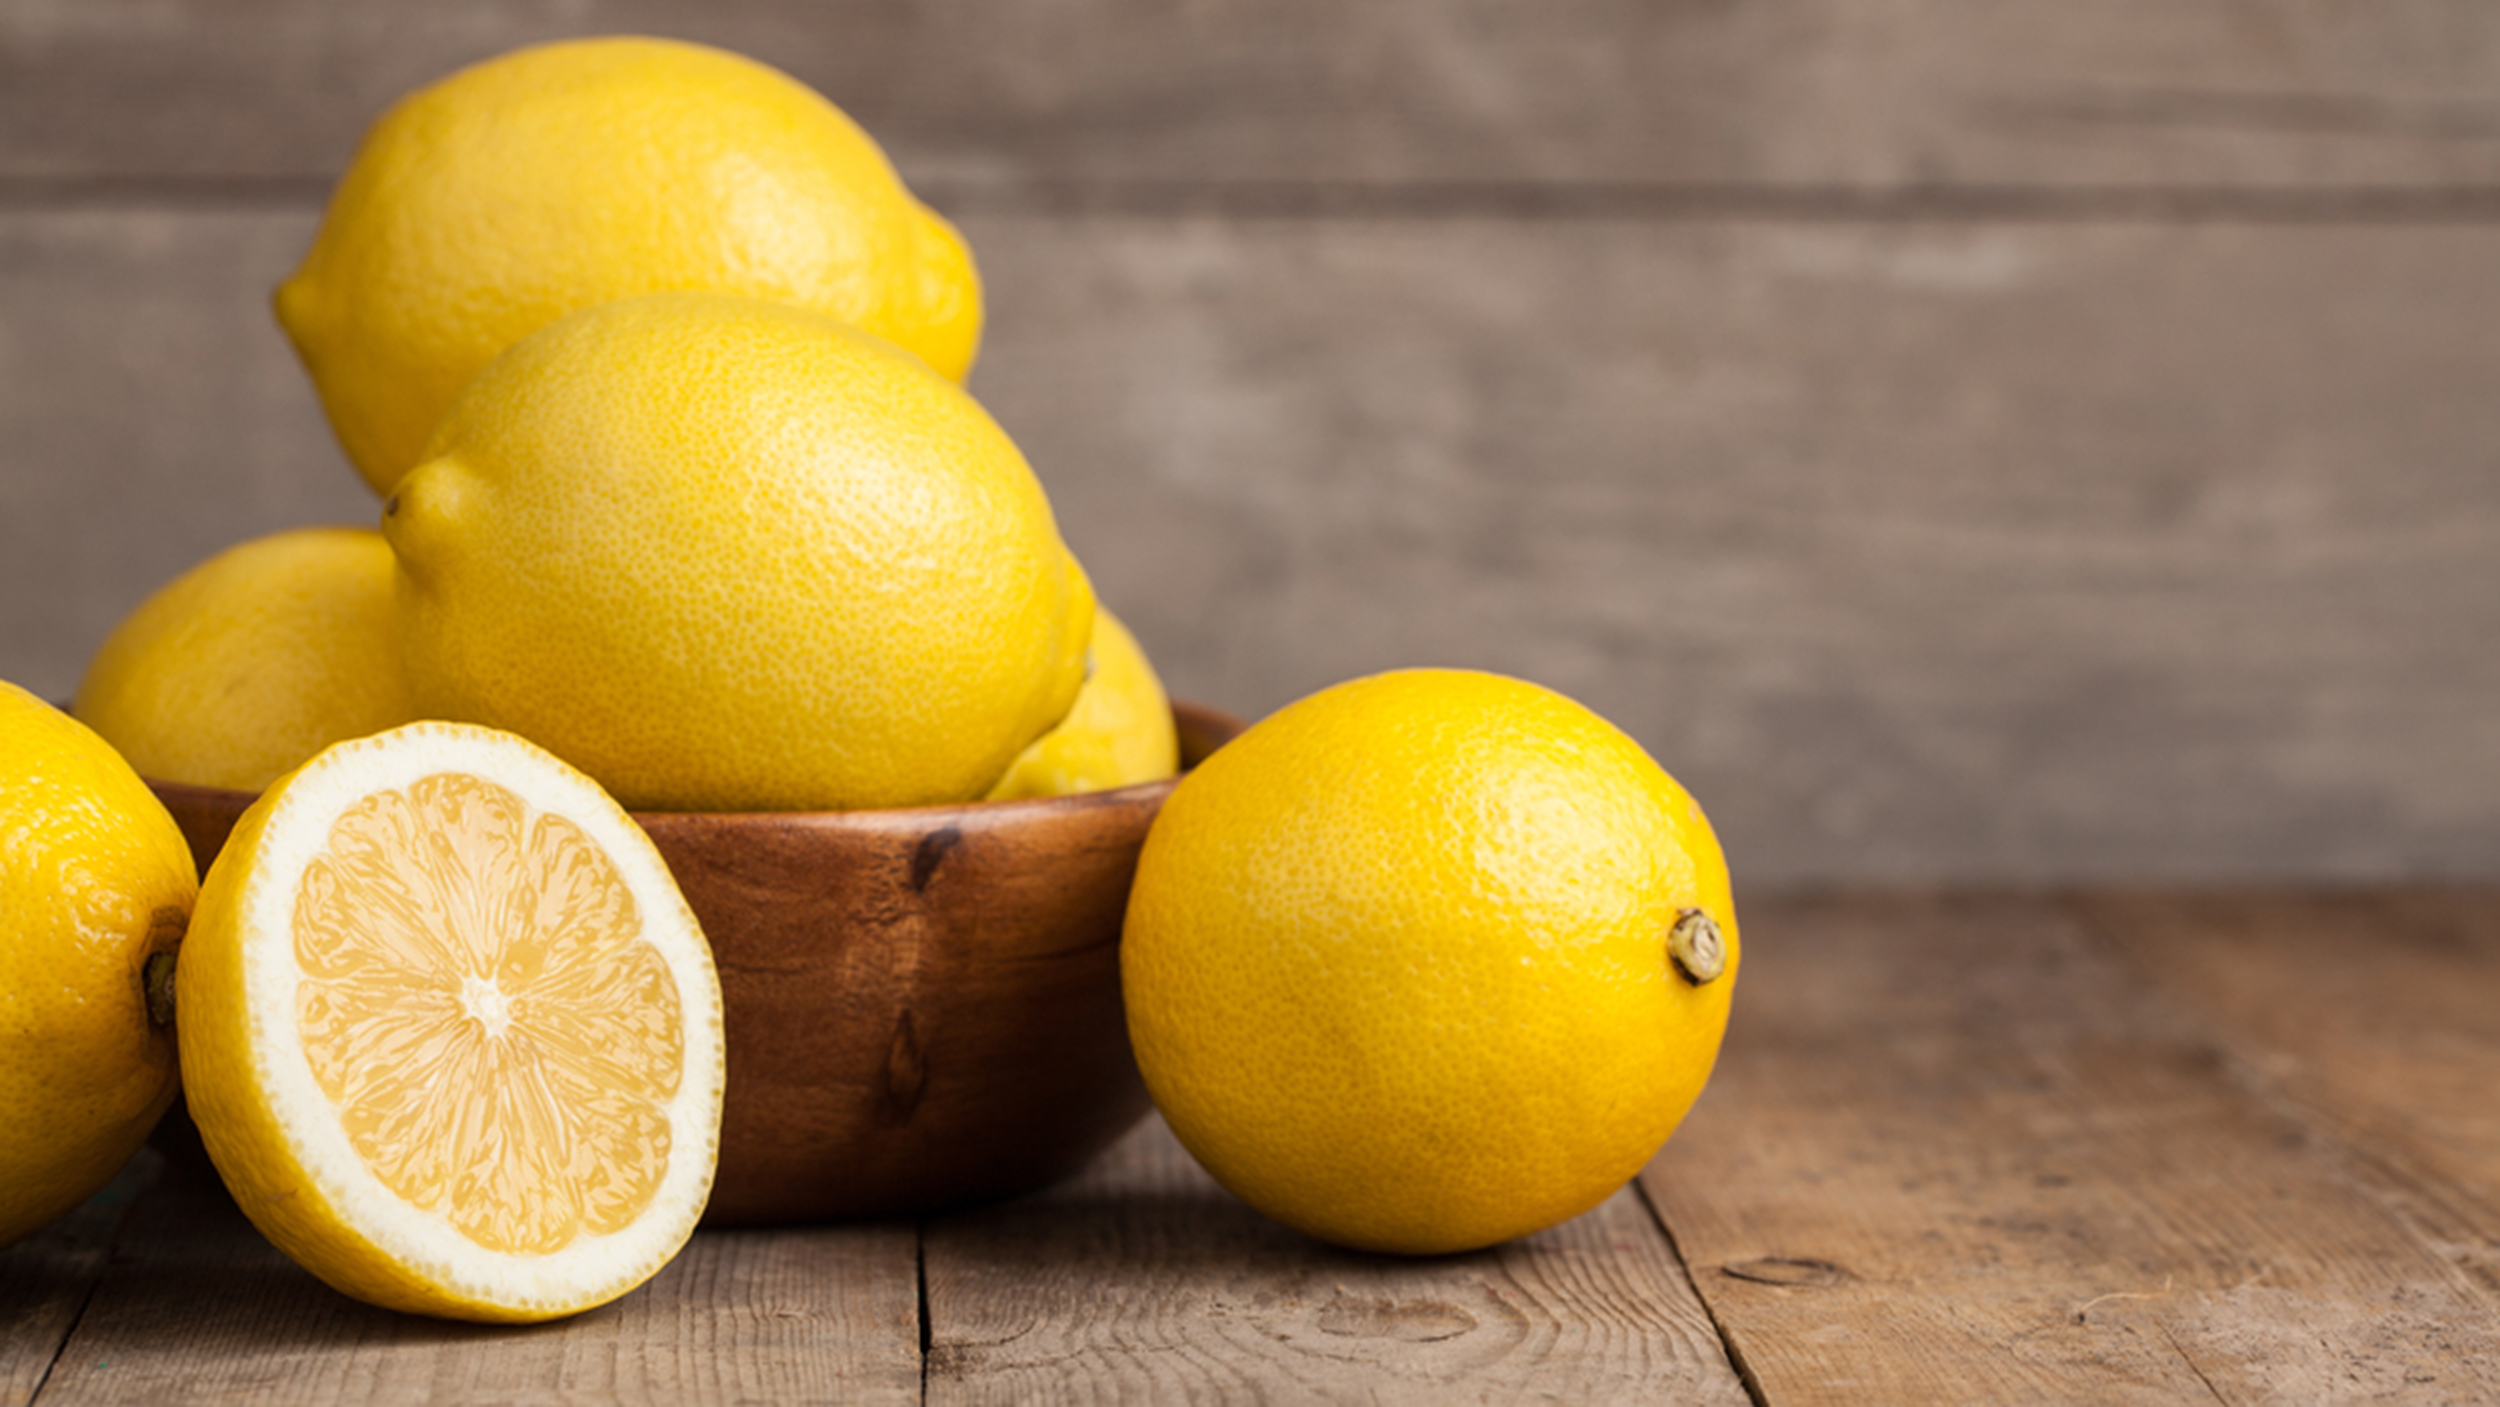 Lemon DIY: How to clean your home with lemon